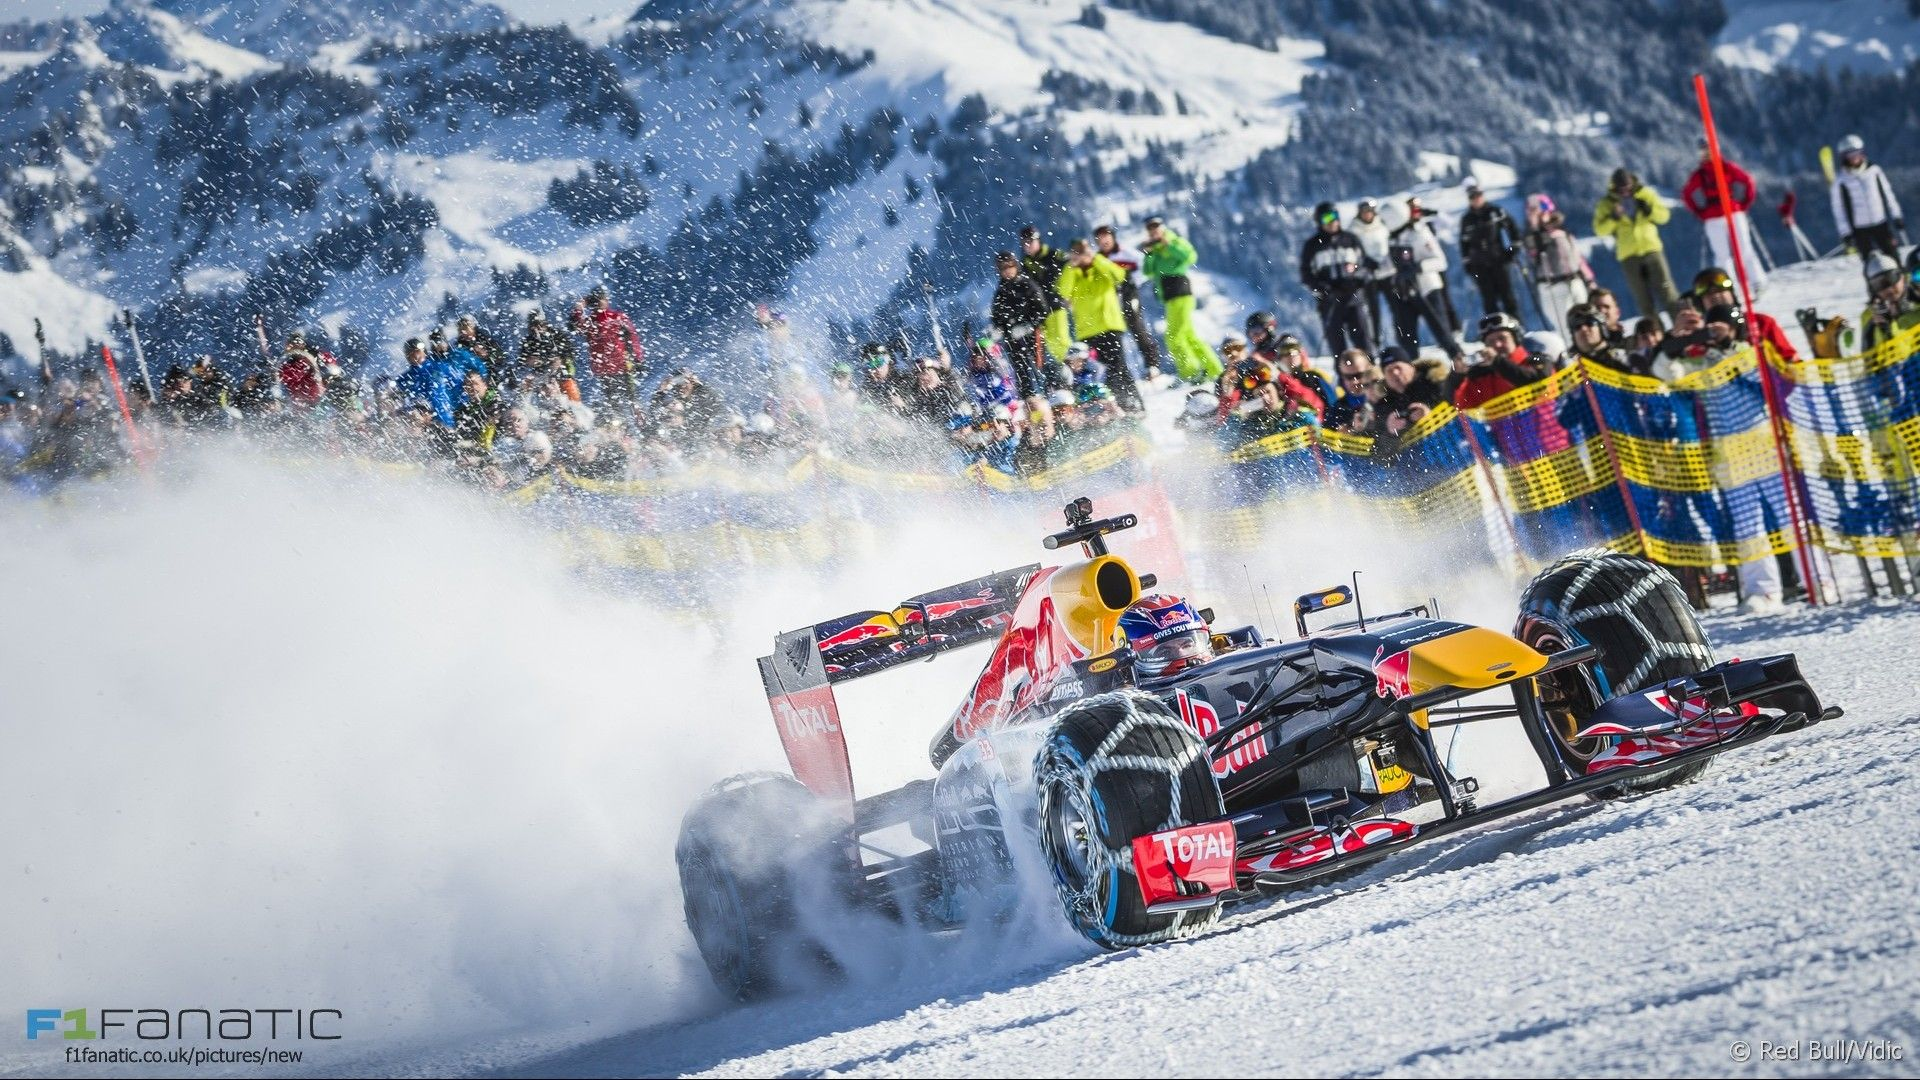 Max Verstappen Took A Red Bull RB7 On The Slopes Of Streif Ski Course In Kitzbuehel Demonstration Run Thursday